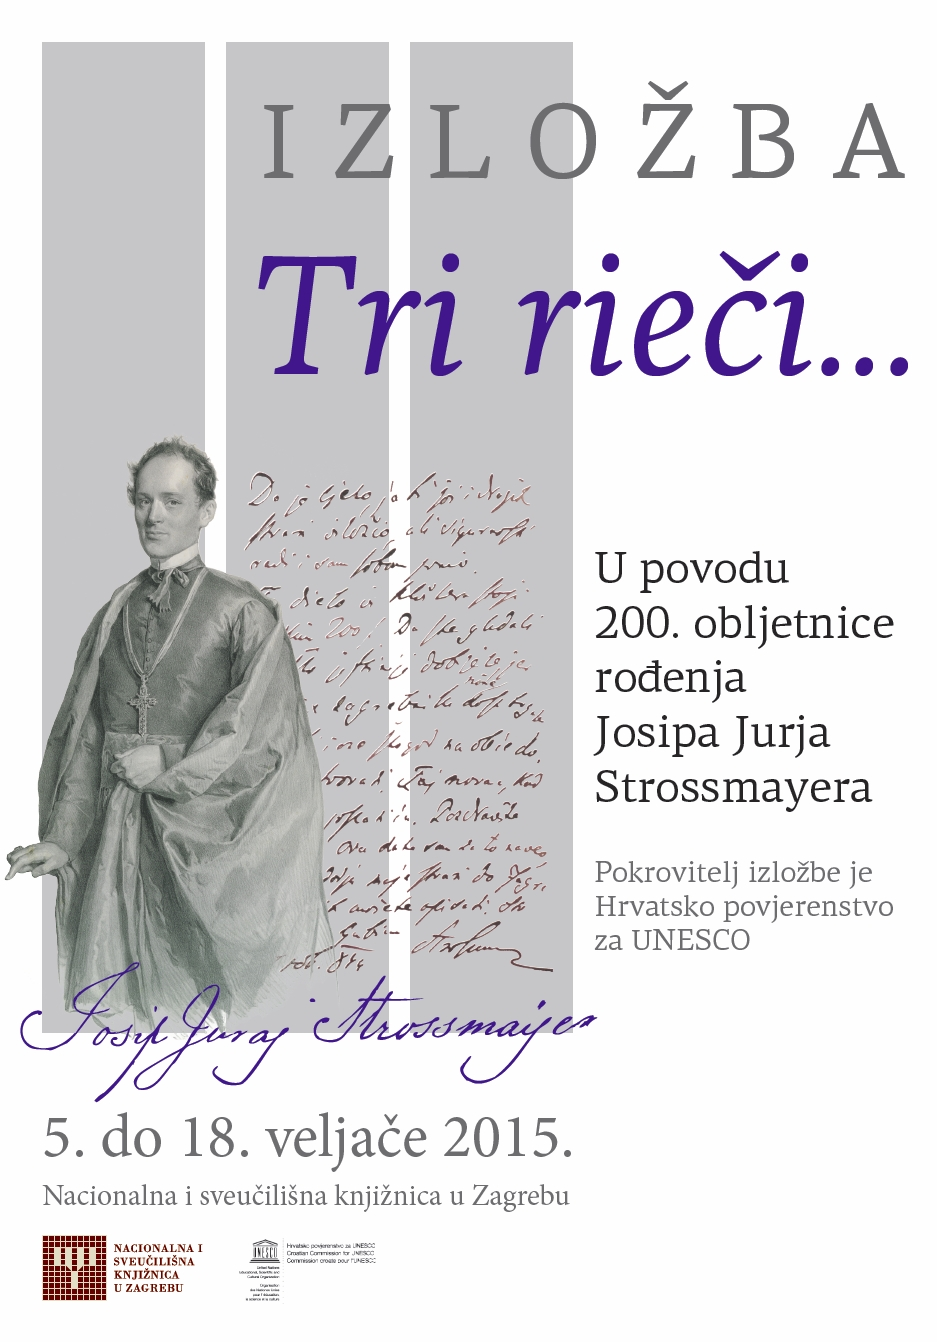 Poster for the exhibition dedicated to the 200th anniversary of the birth of Josip Juraj Strossmayer.